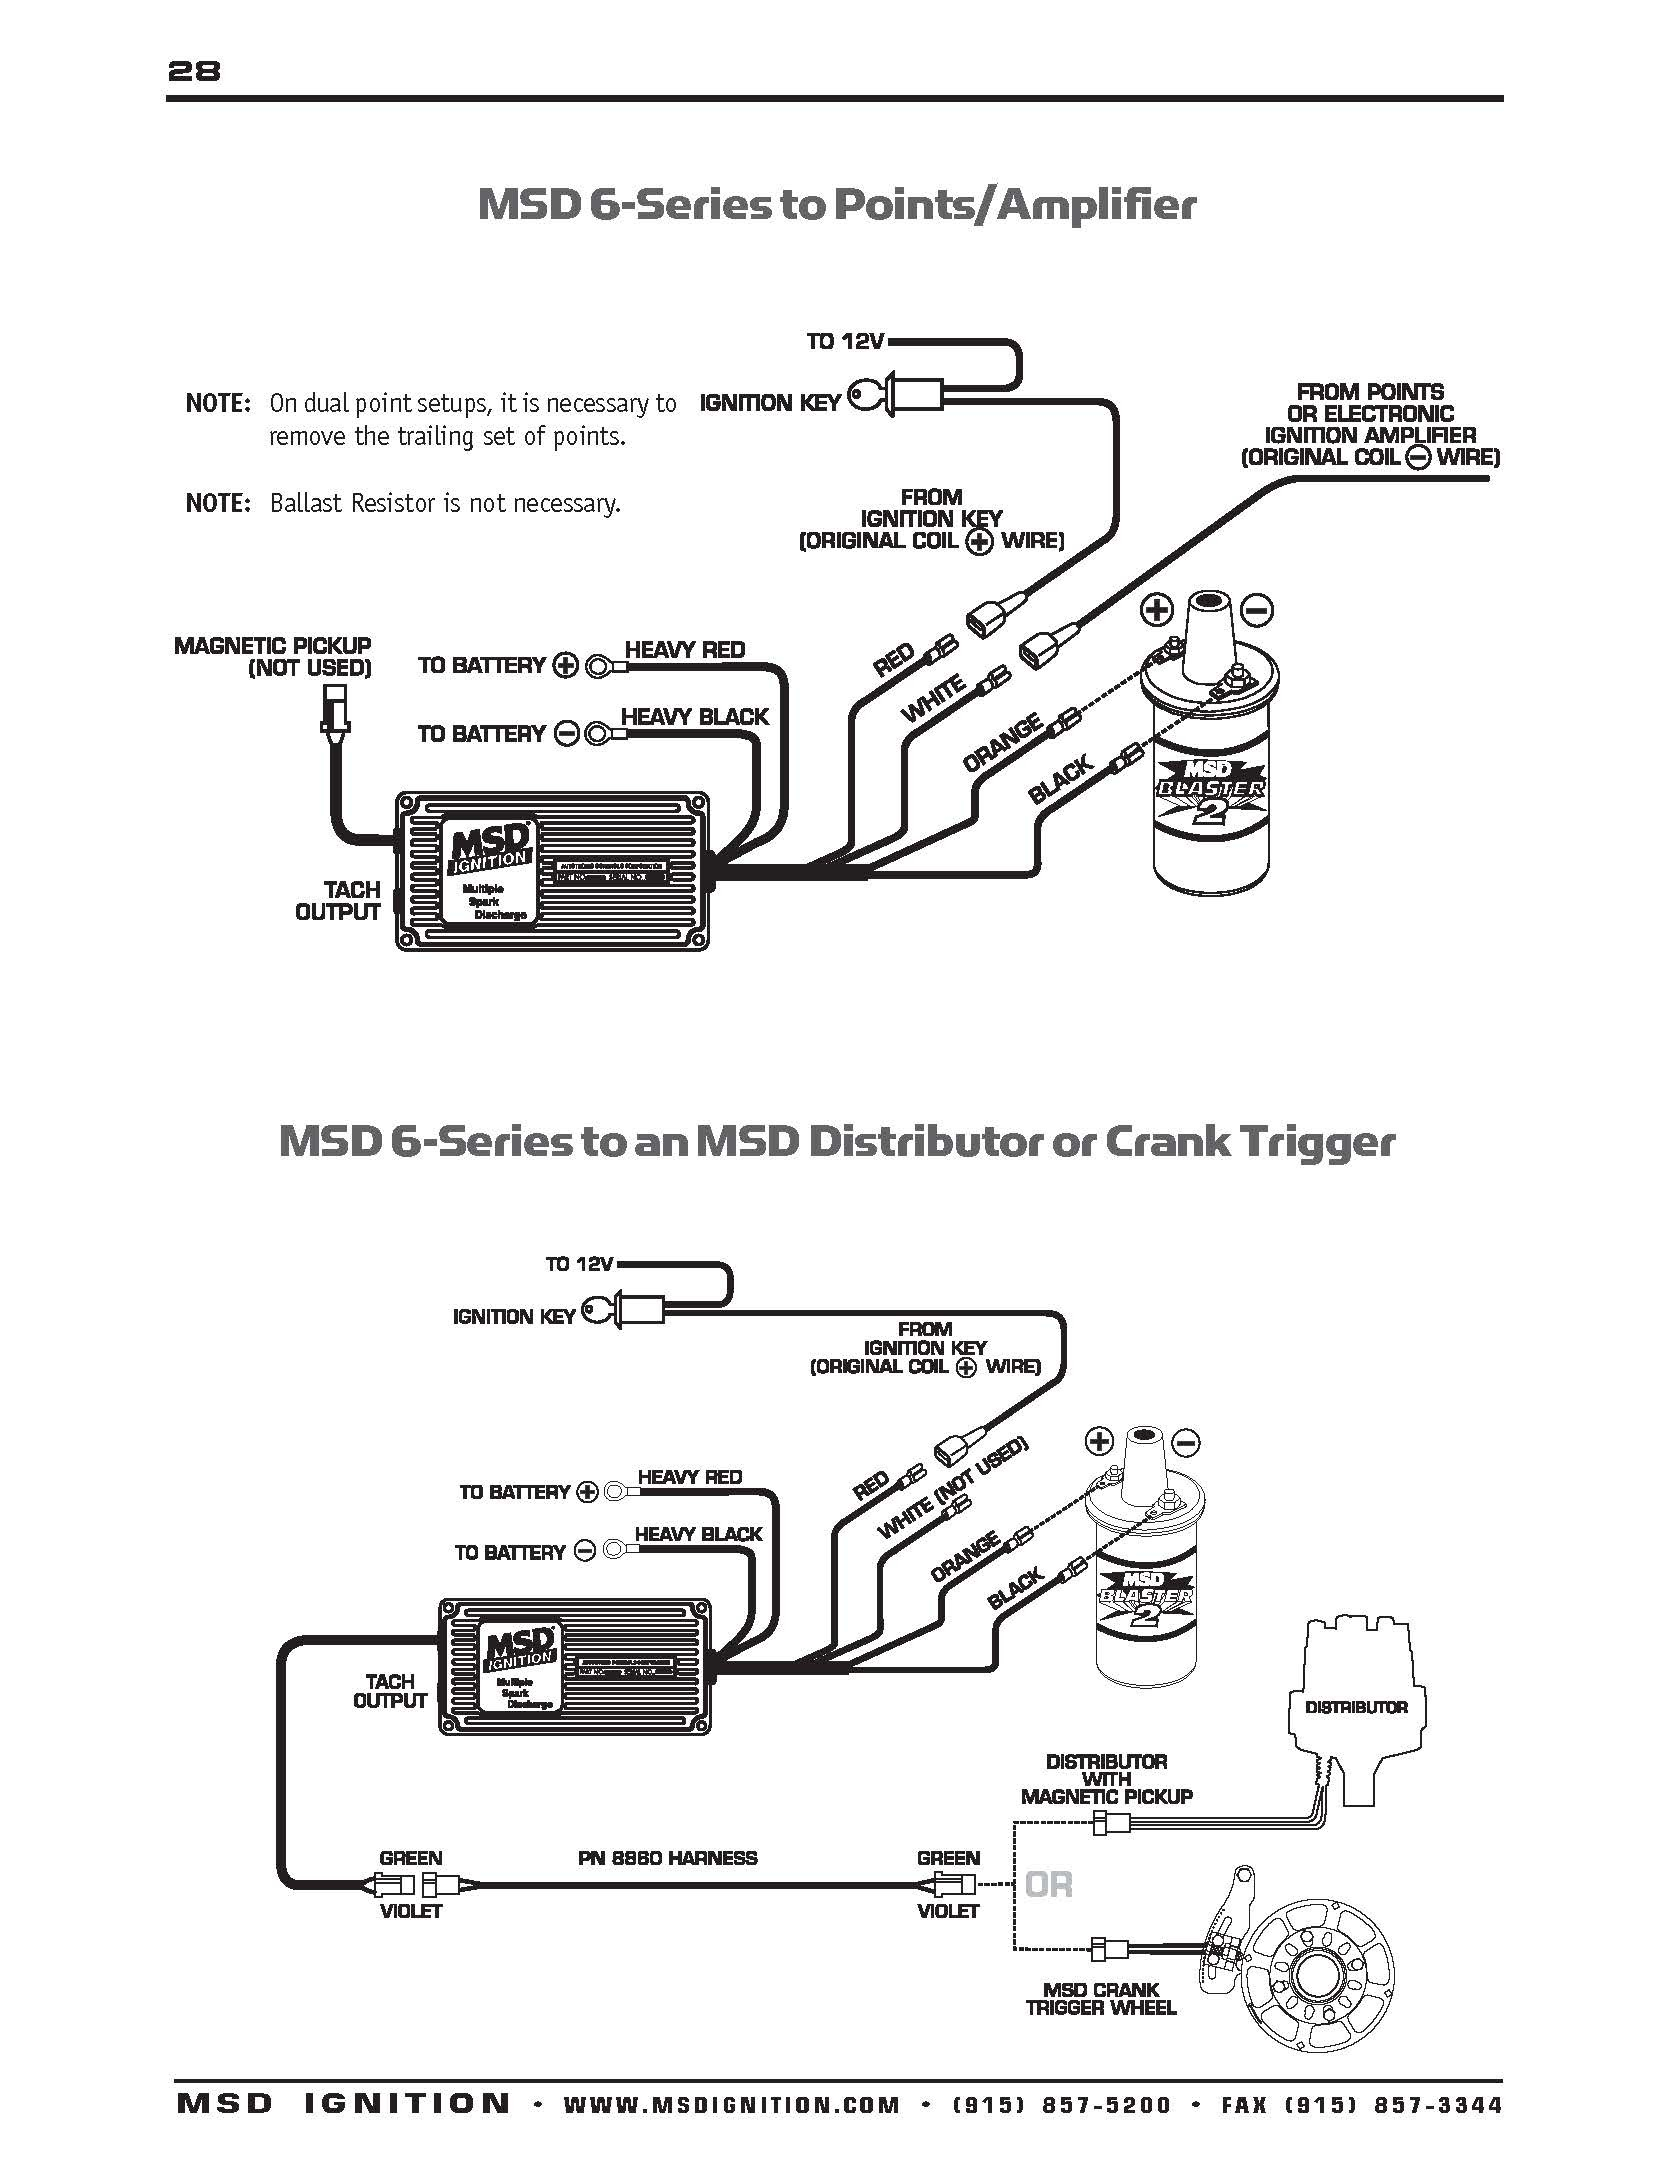 Mallory Ignition Wiring Diagram Ford Iv Worksheet And 685 Library Rh 6 Skriptoase De 460